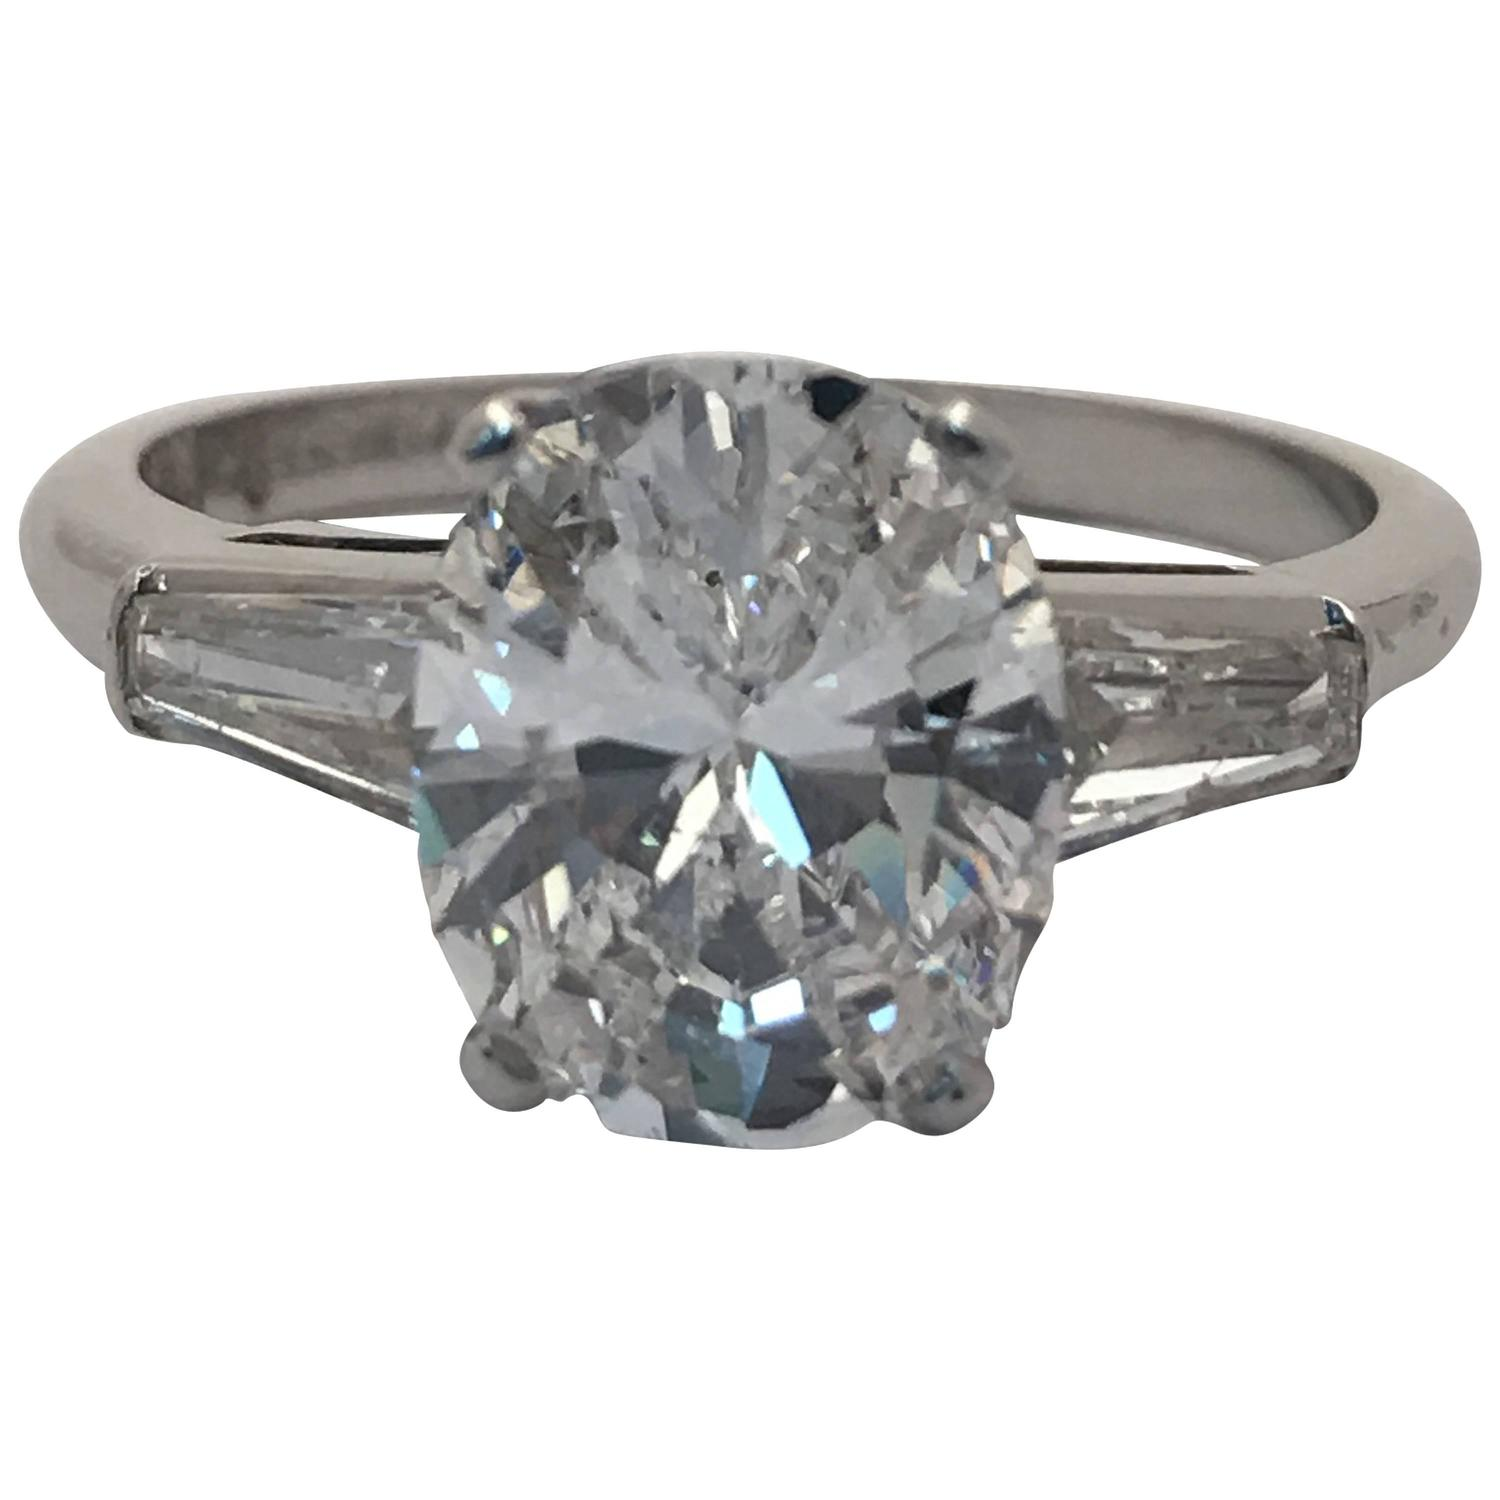 Magnificent 2 00 Carat GIA Cert Cushion Cut Diamond Platinum Engagement Ring